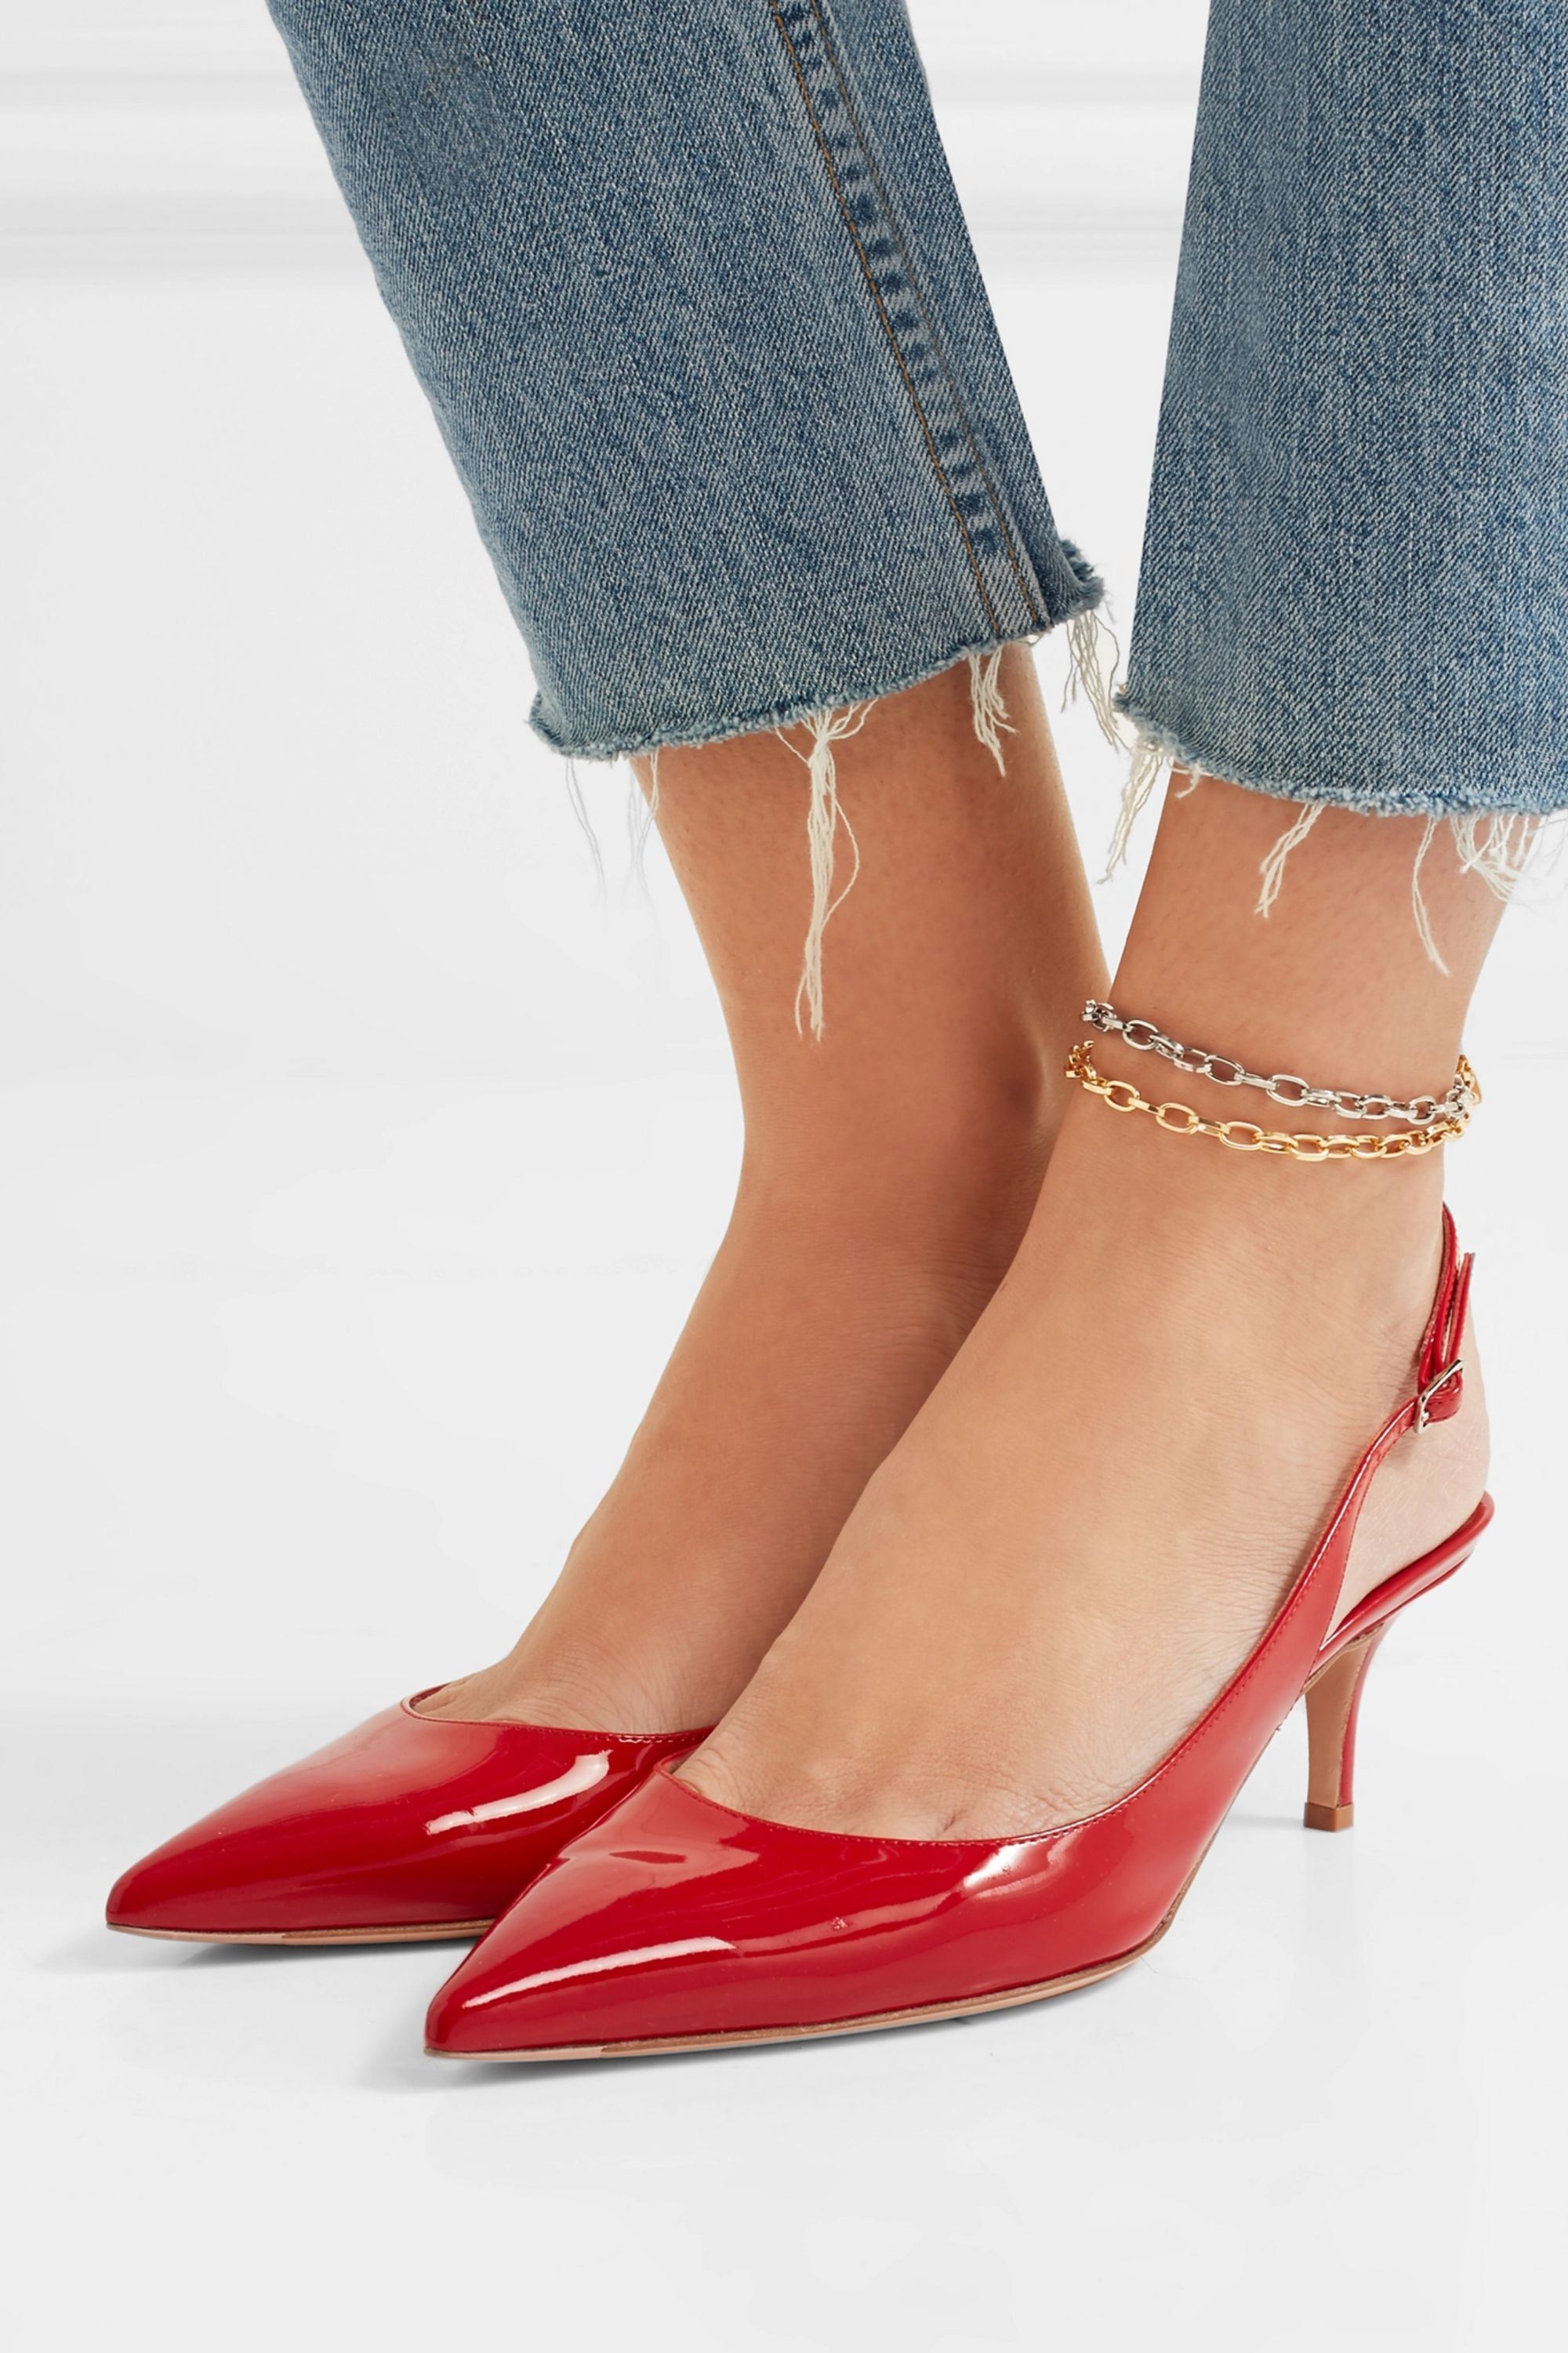 Kenneth Jay Lane Gold and silver-tone anklets